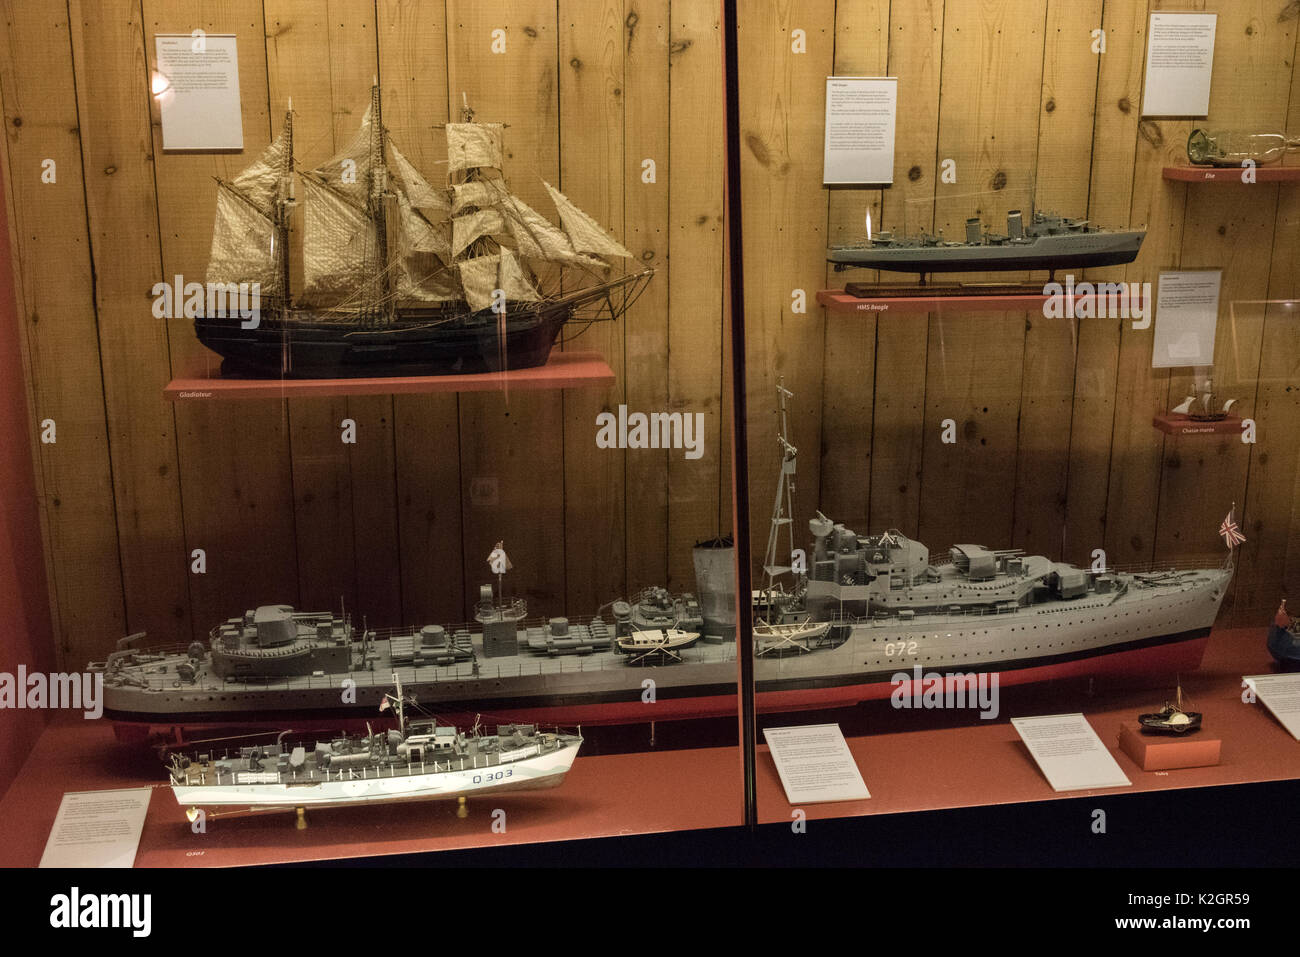 Exhibits on display of Jersey's seafaring at the Maritime Museum and Occupation Tapestry Gallery on the harbour at  St. Helier, Jersey in the Channel  - Stock Image